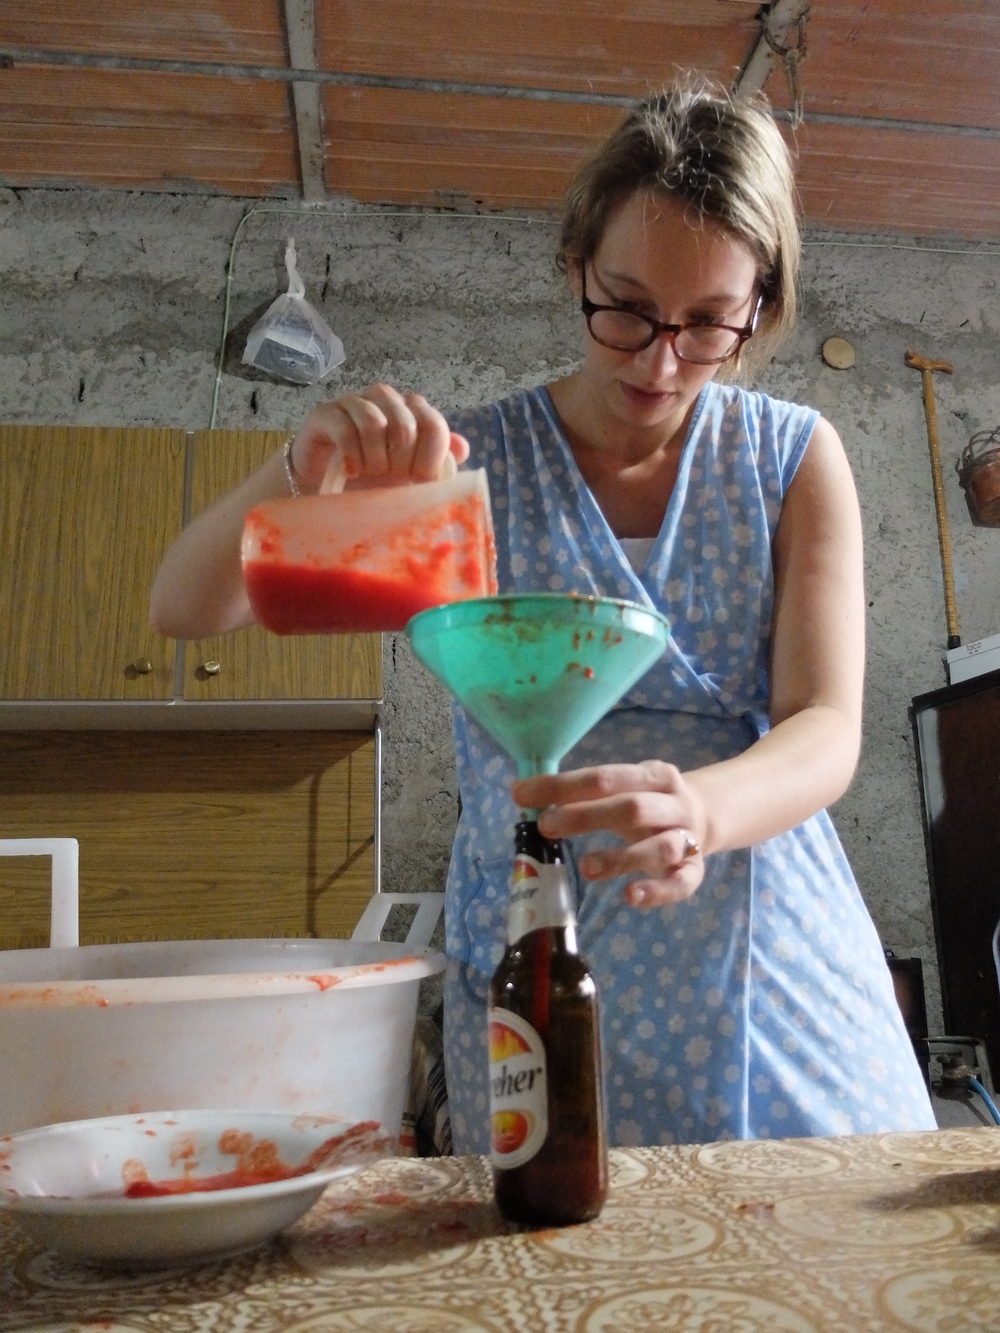 Simona filling up bottles with passata